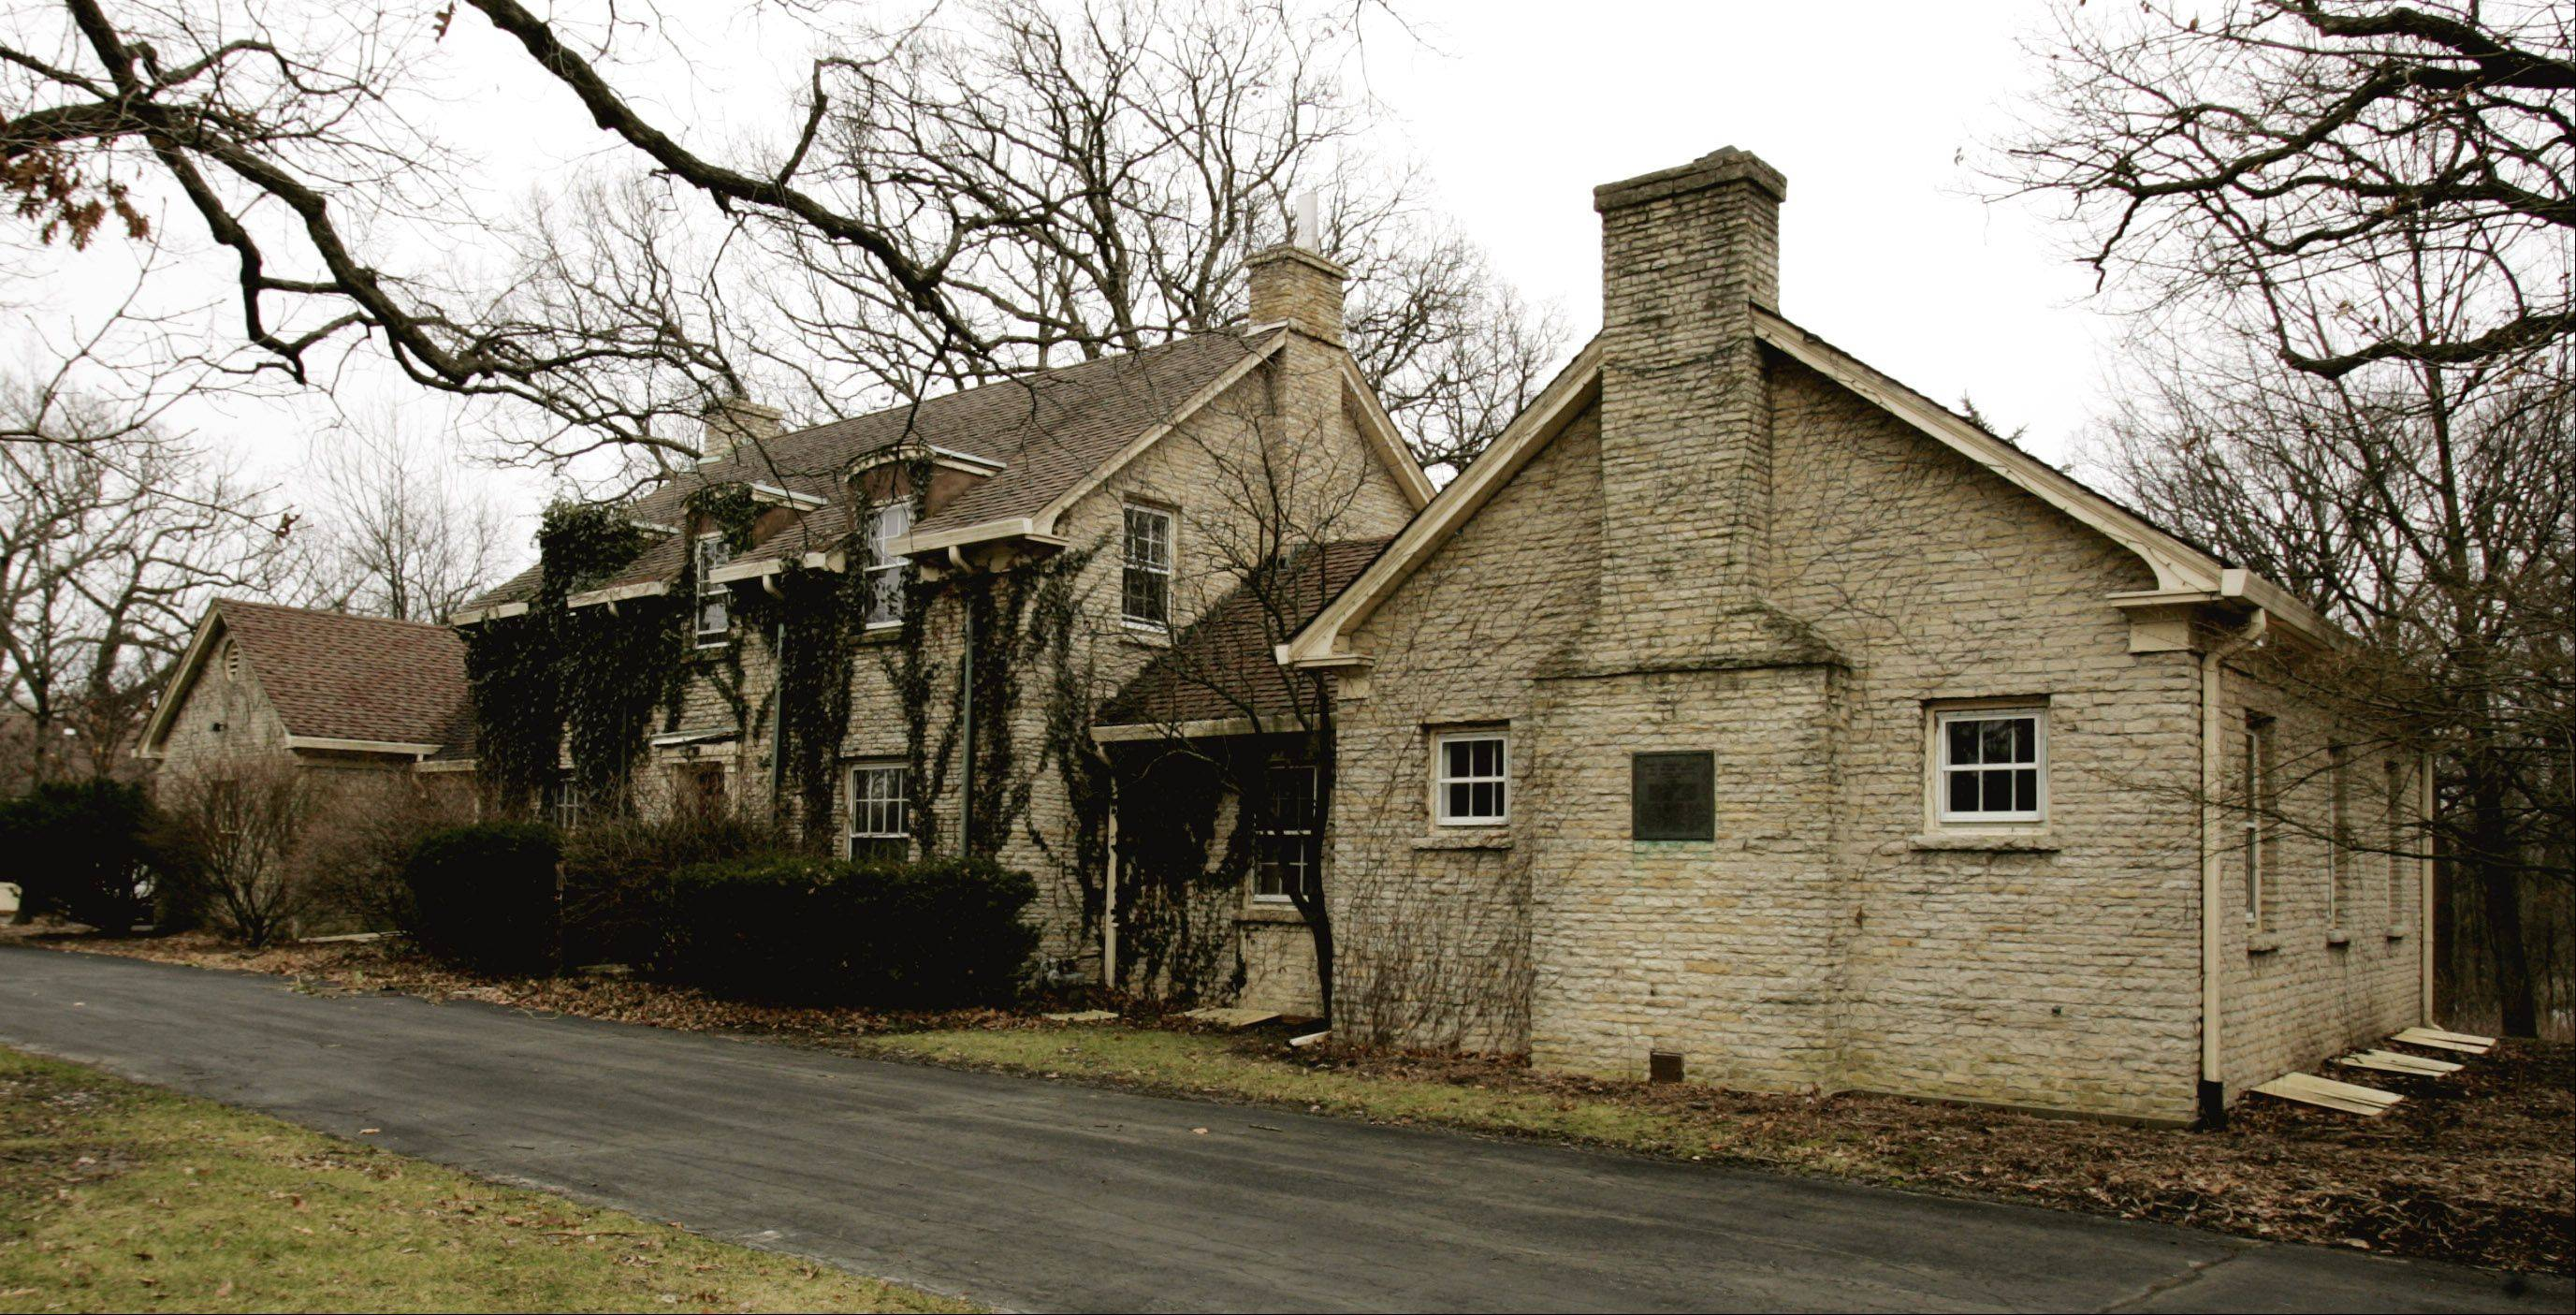 The DuPage Forest Preserve Commission has agreed to use $100,000 that was supposed to pay for the demolition of the McKee House near Glen Ellyn to hire an architectural firm to study the possibility of saving the building.